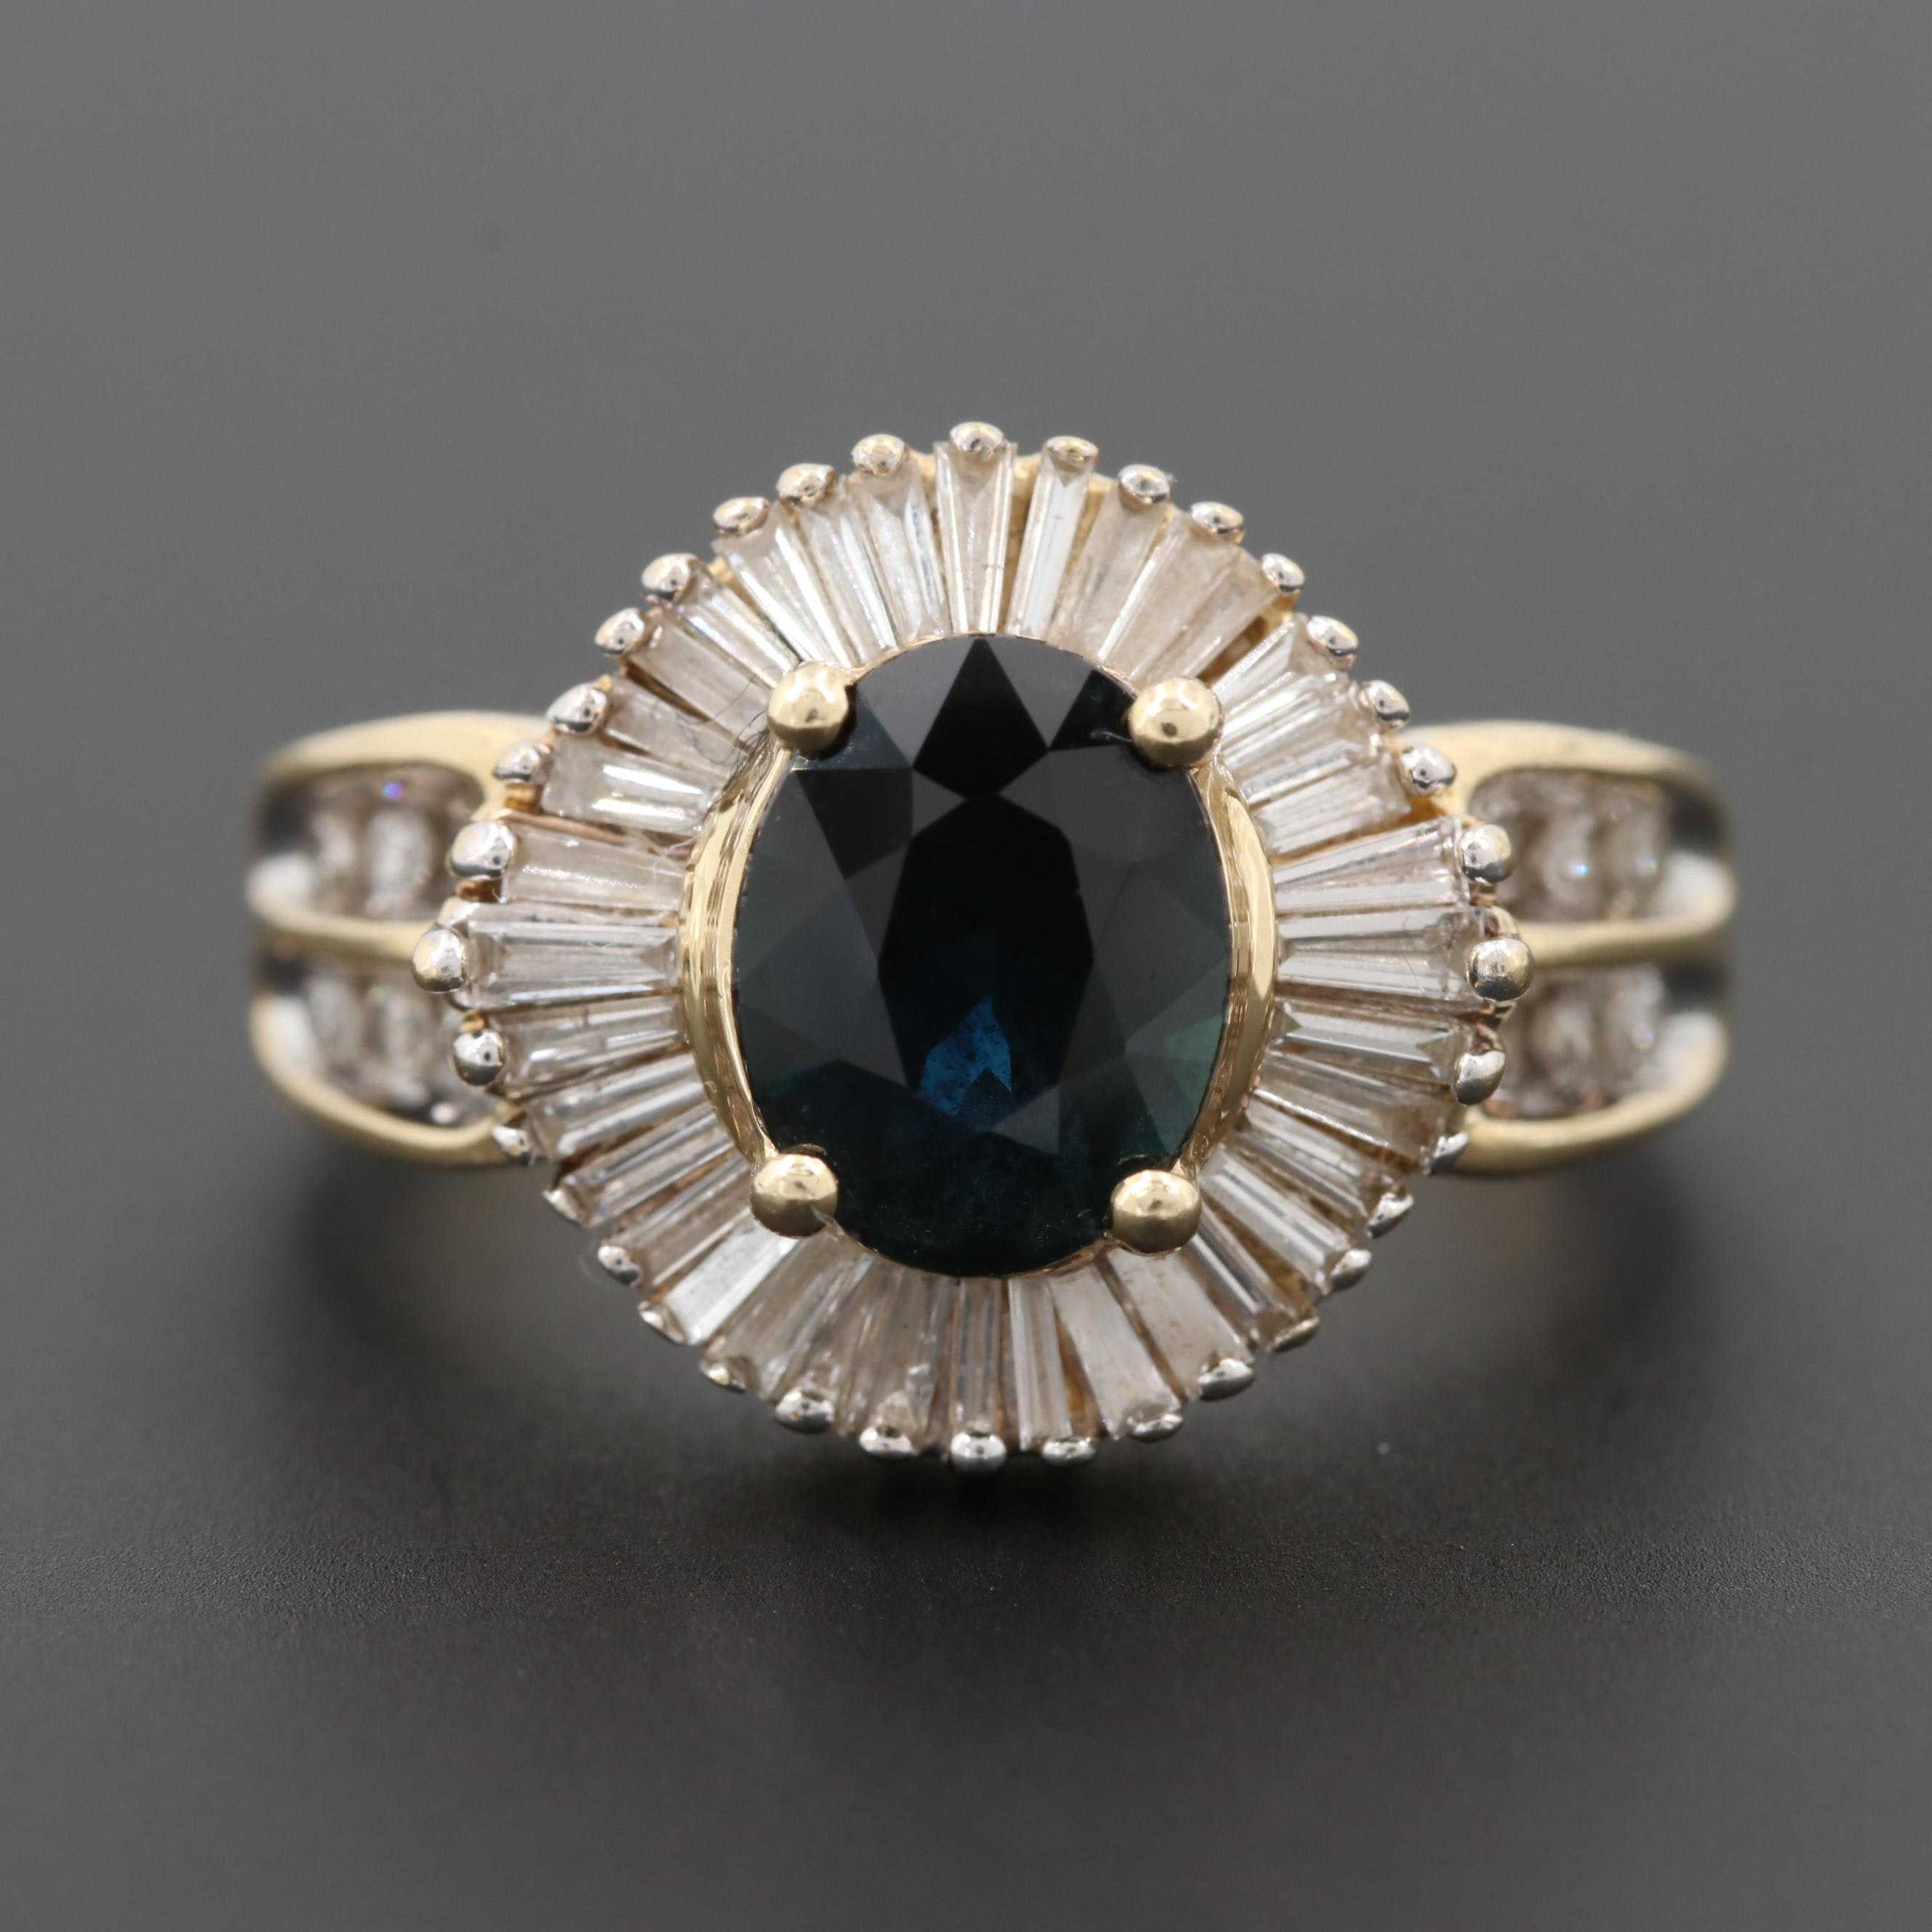 14K Yellow Gold 1.74 CT Sapphire and Diamond Ring